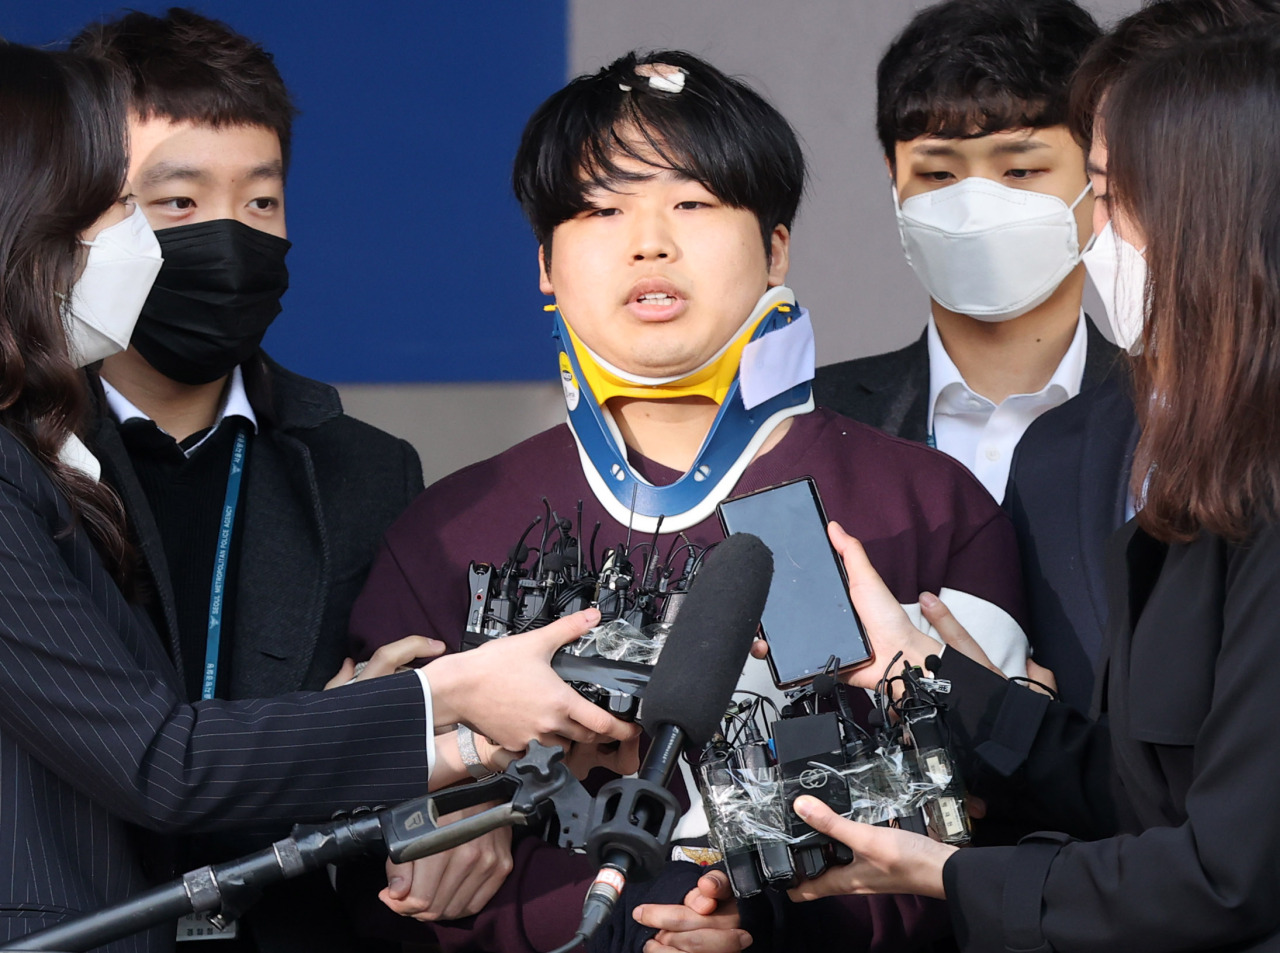 Cho Ju-bin, the central suspect in the expanding Telegram sexual exploitation case, is transferred to the prosecutors' office from the Jongno Police Station in Seoul on Wednesday. (Yonhap)